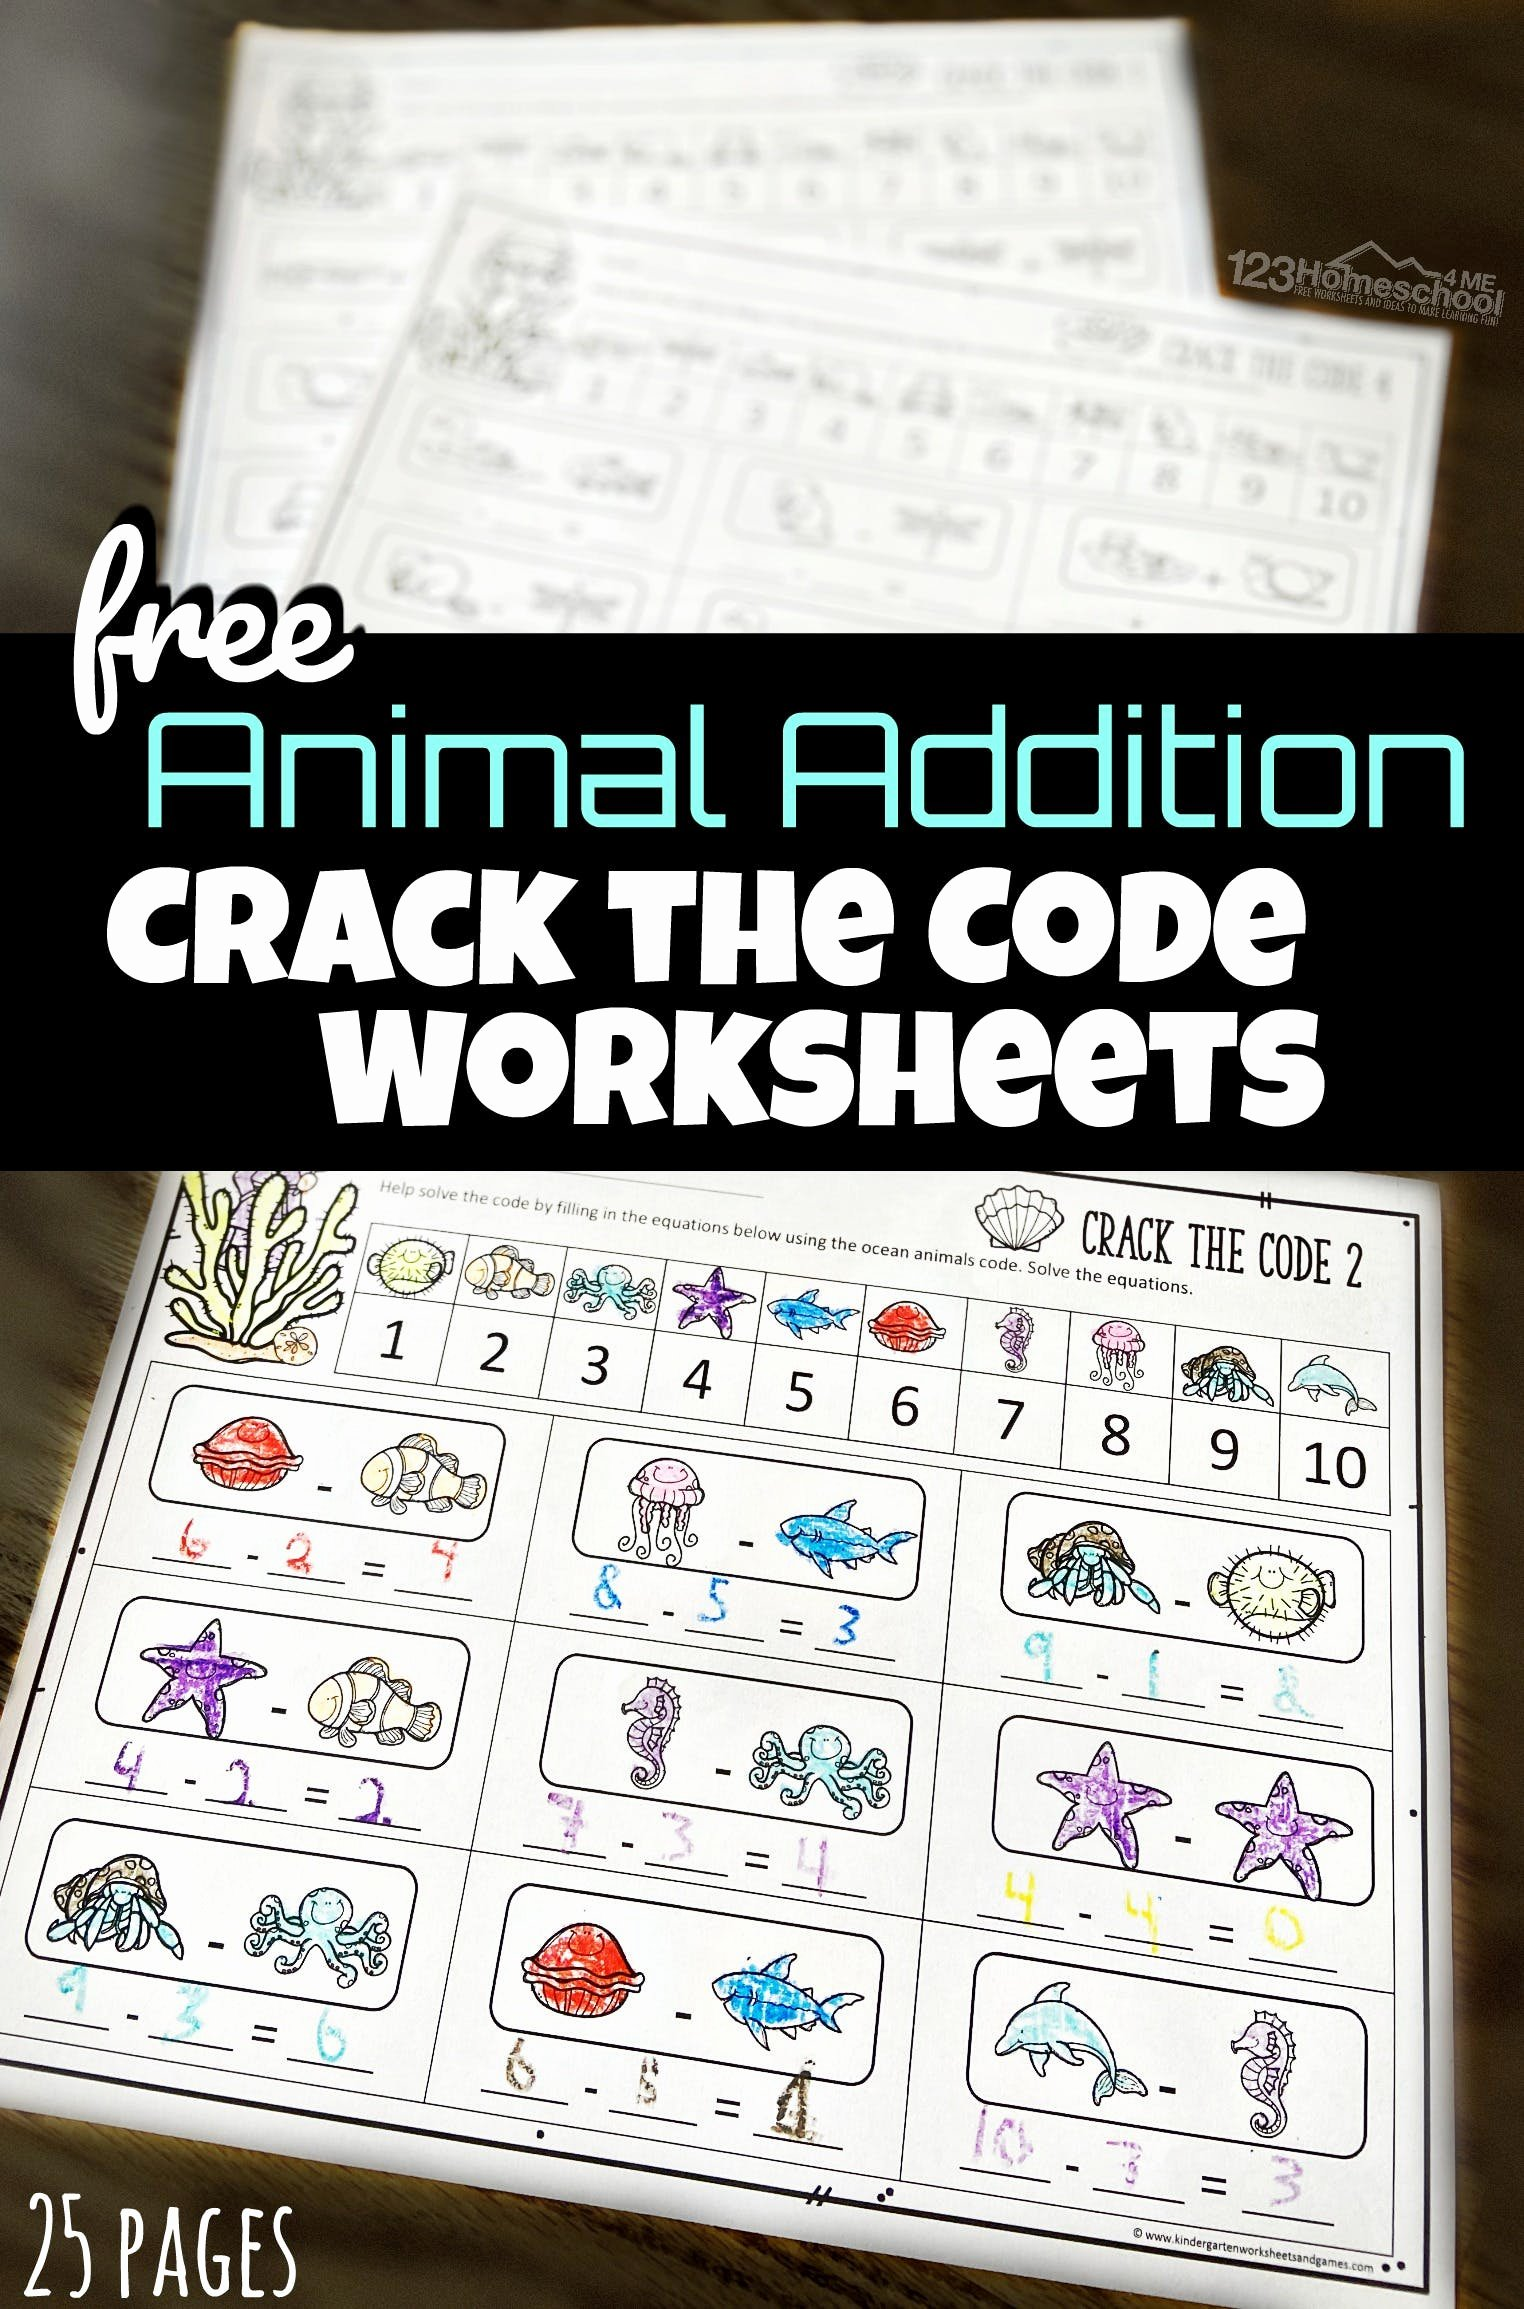 Crack the Code Worksheets Printable Inspirational Math Crack the Code Worksheets